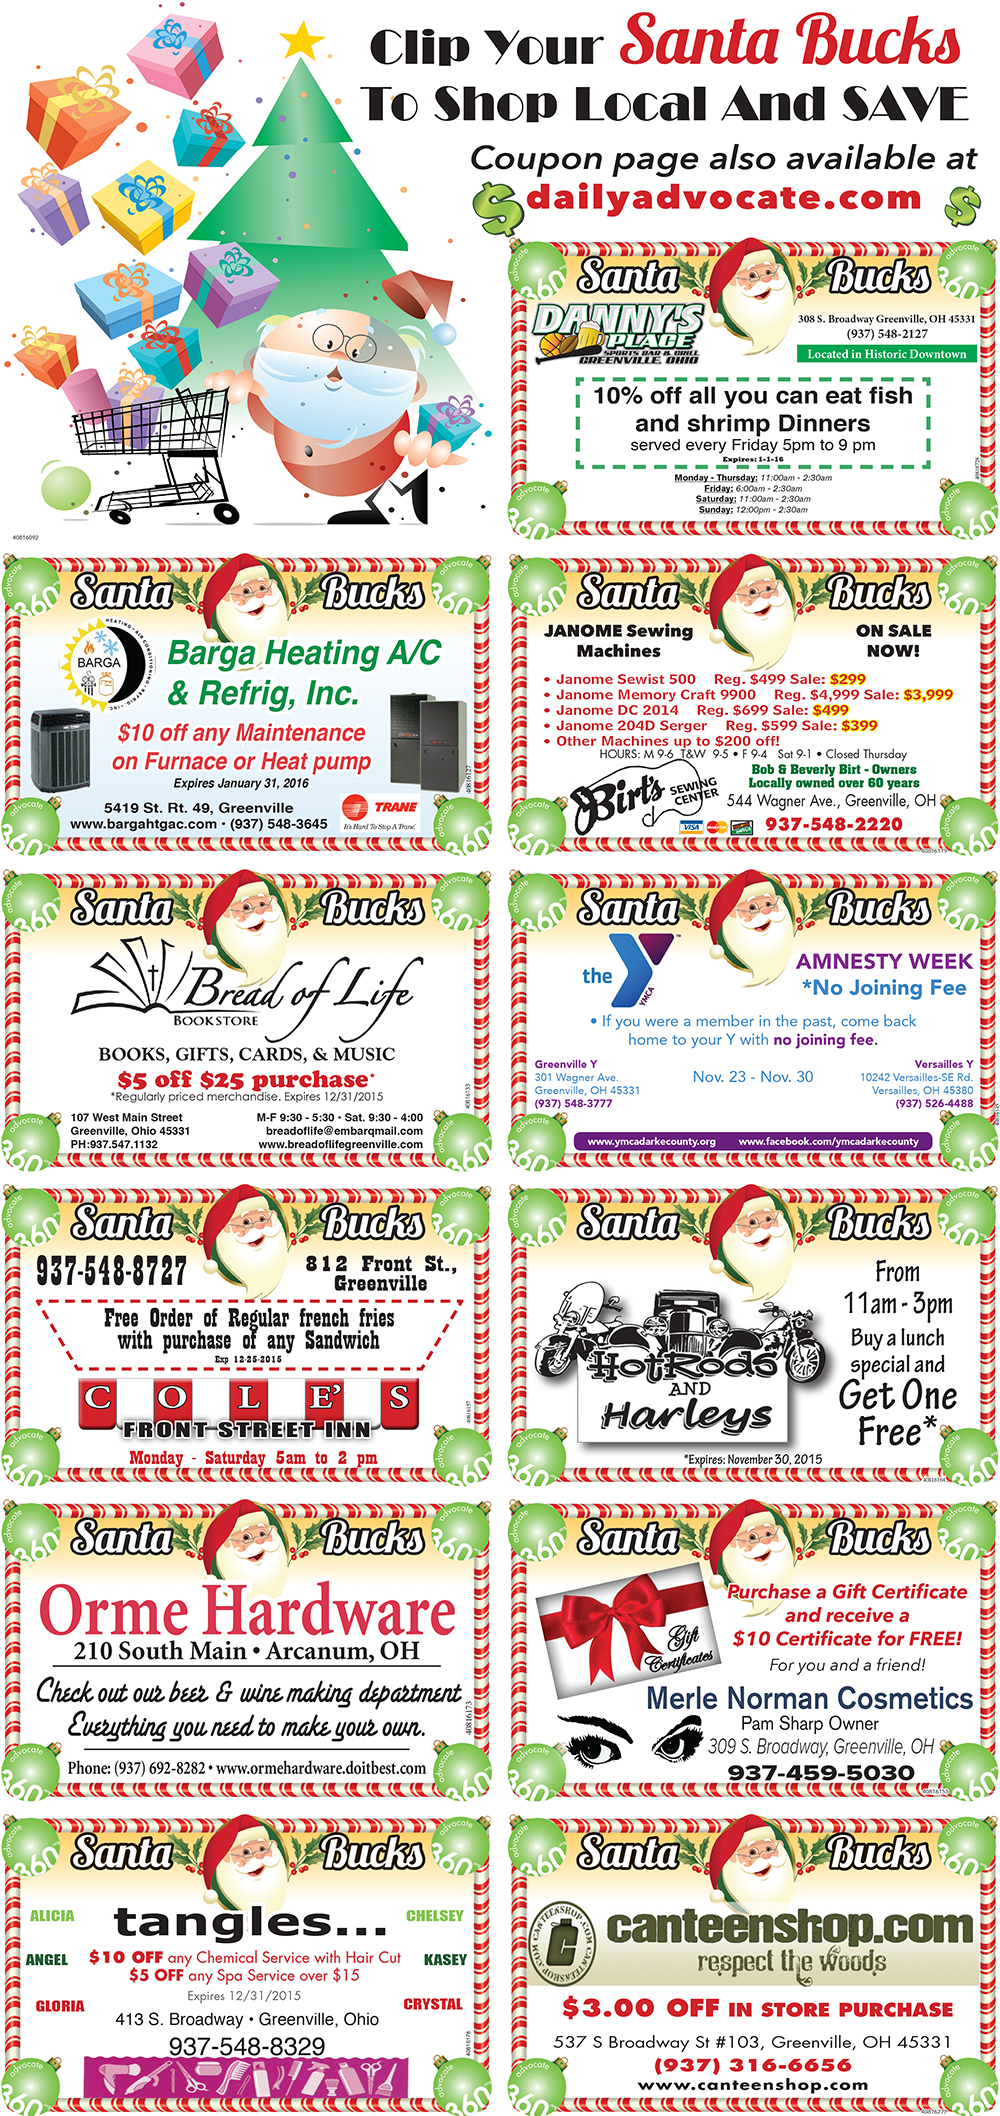 Santa Bucks Coupon 2015